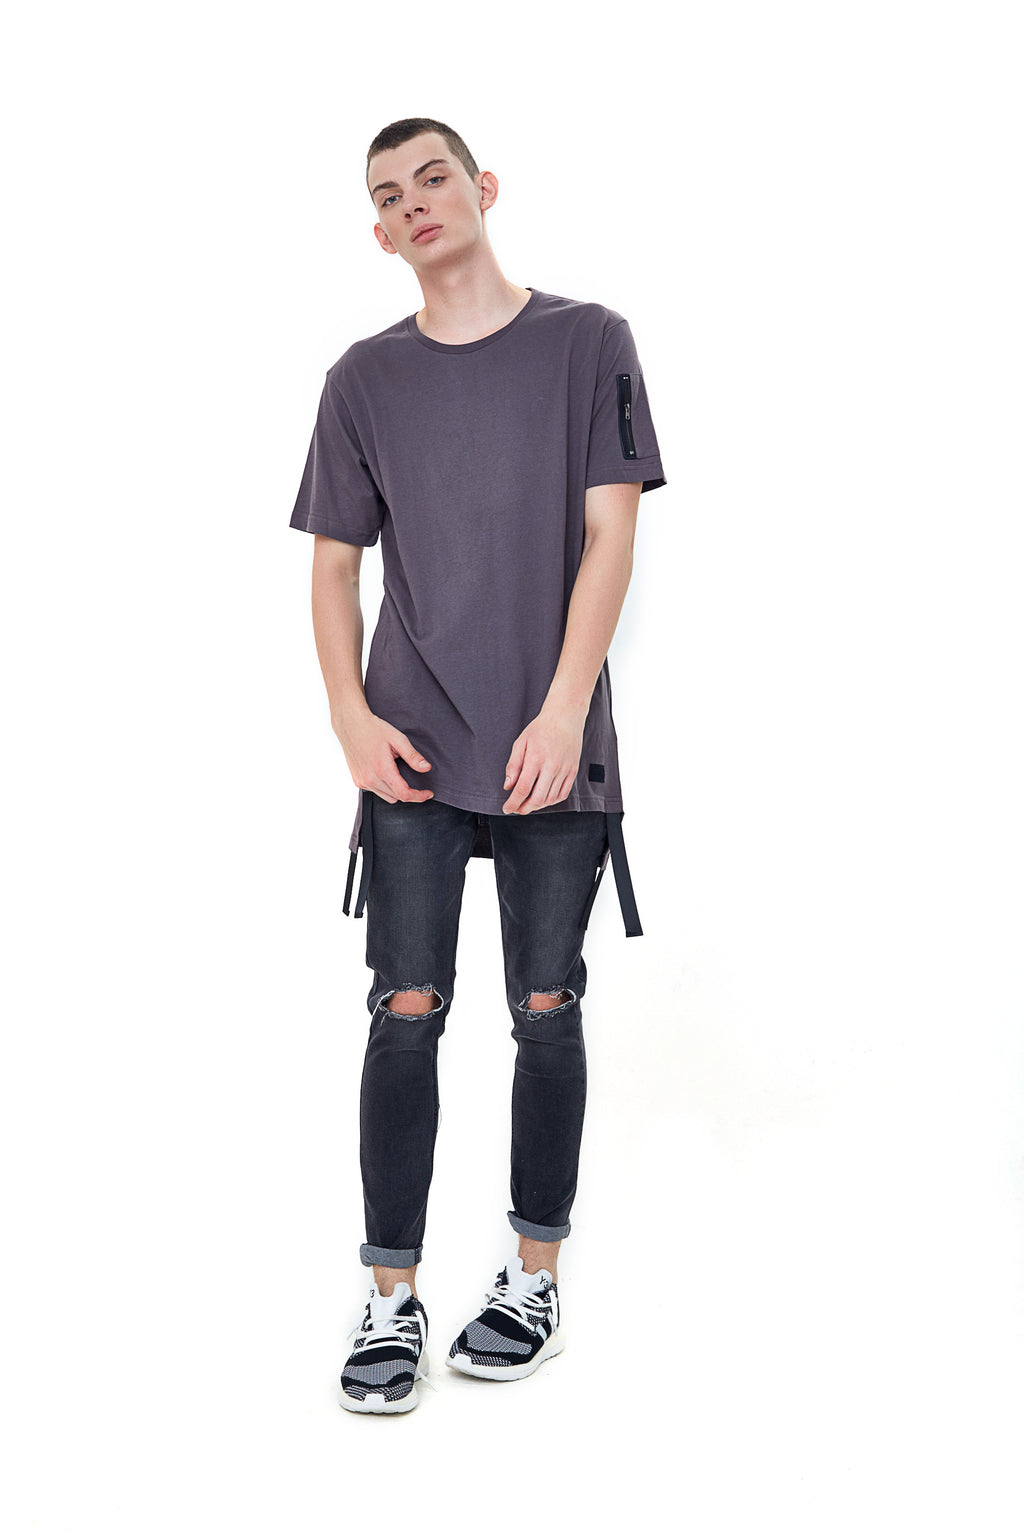 TAB DARK GREY LONGLINE T-SHIRT